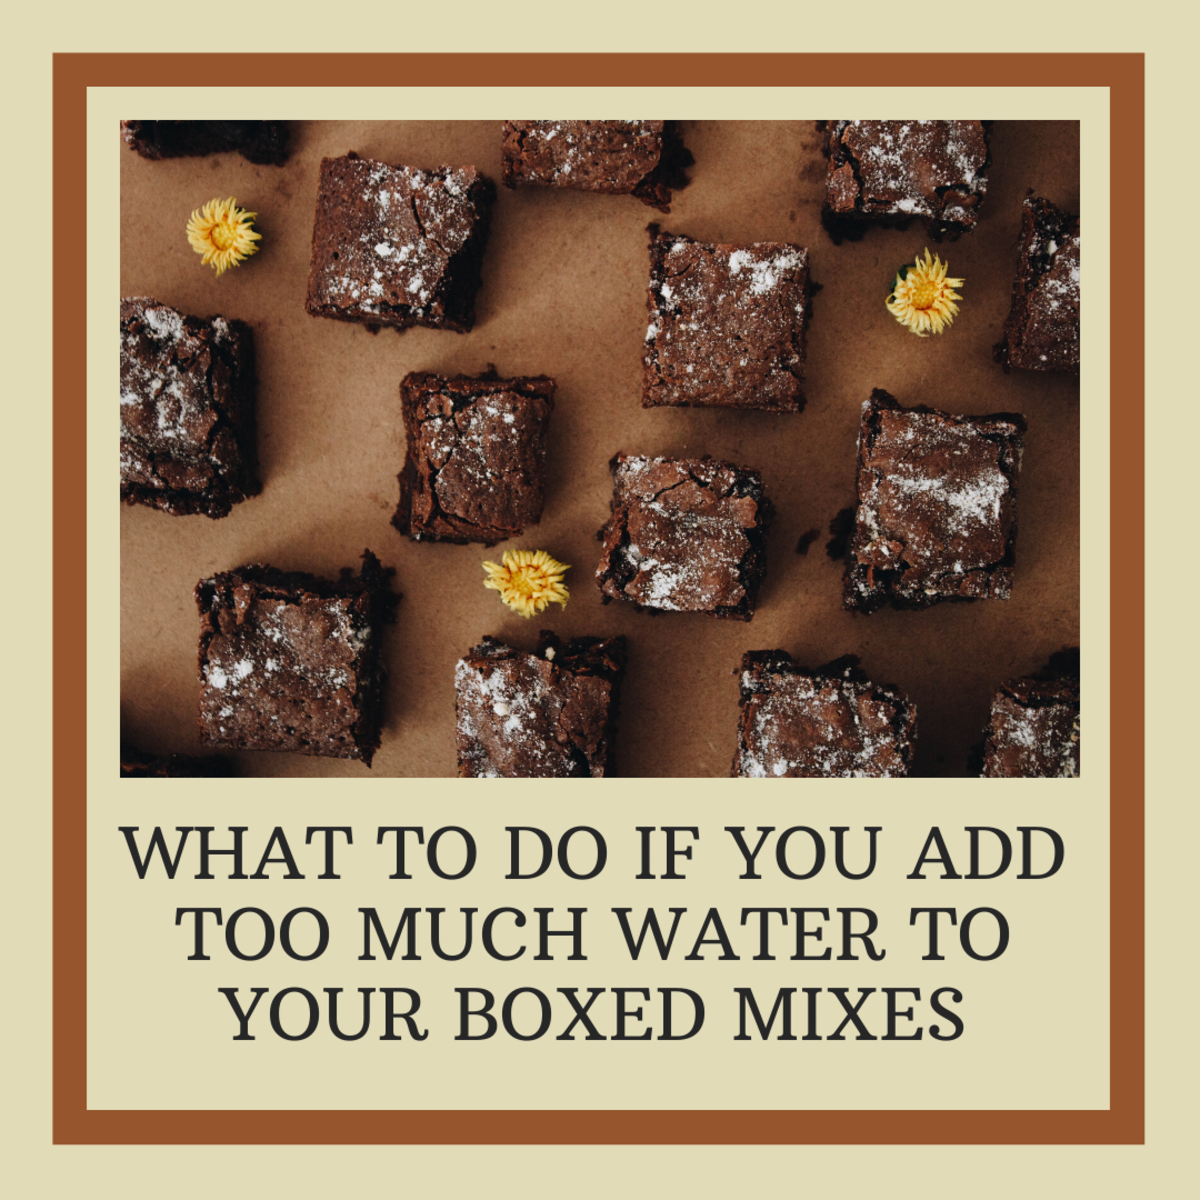 Read on to find out what to do if you add too much water to your brownie mix.